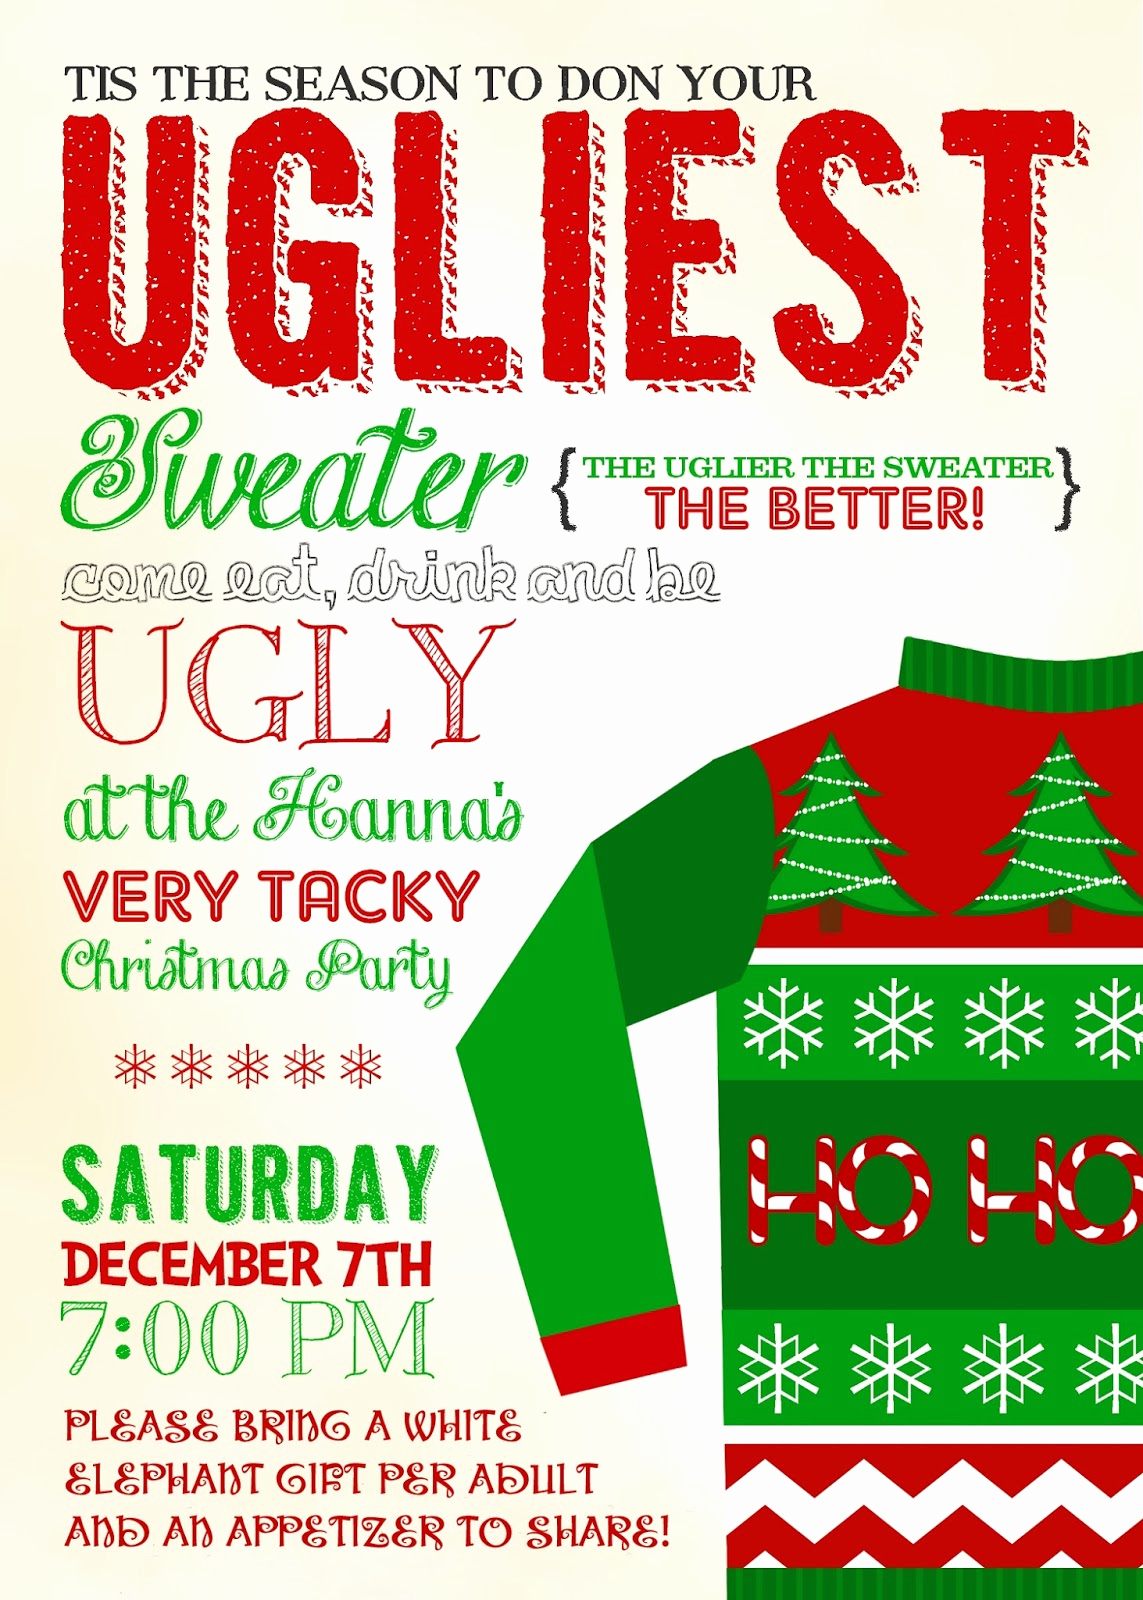 Ugly Sweater Party Invitation Templates Lovely Sweeten Your Day events December 2013